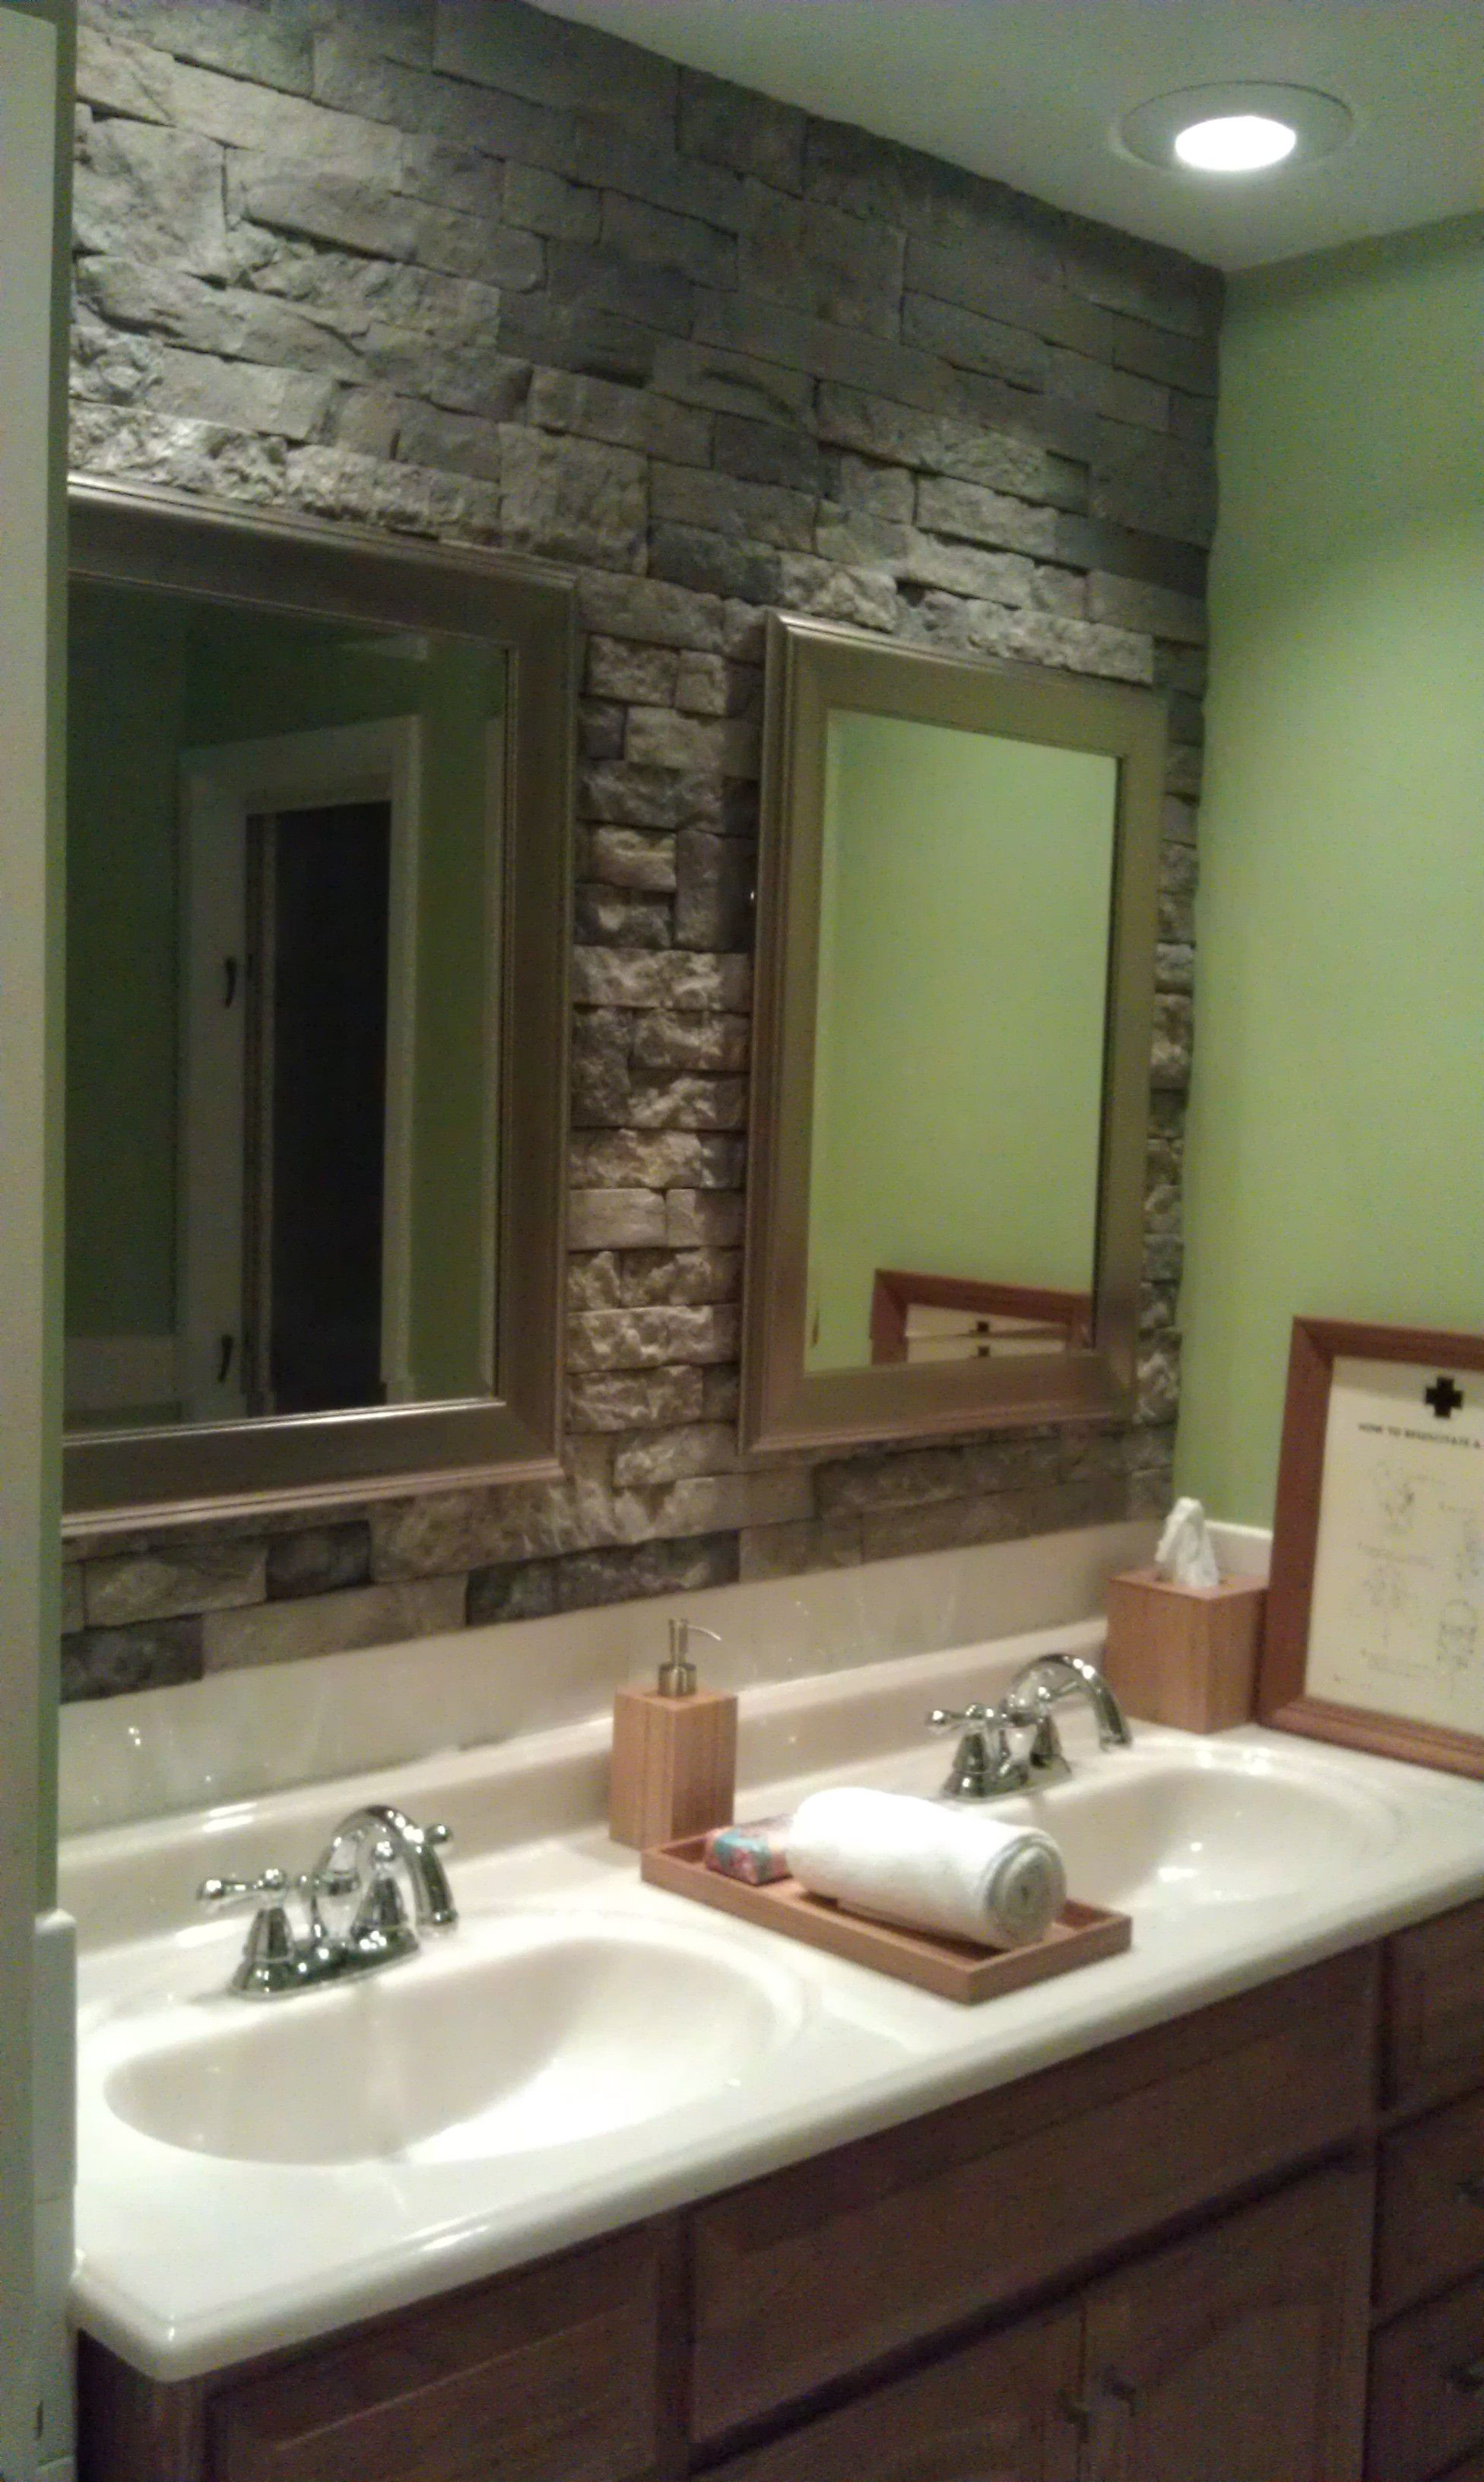 Best ideas about Accent Walls In Bathrooms . Save or Pin airstone stone accent wall in bathroom Can t wait to do Now.